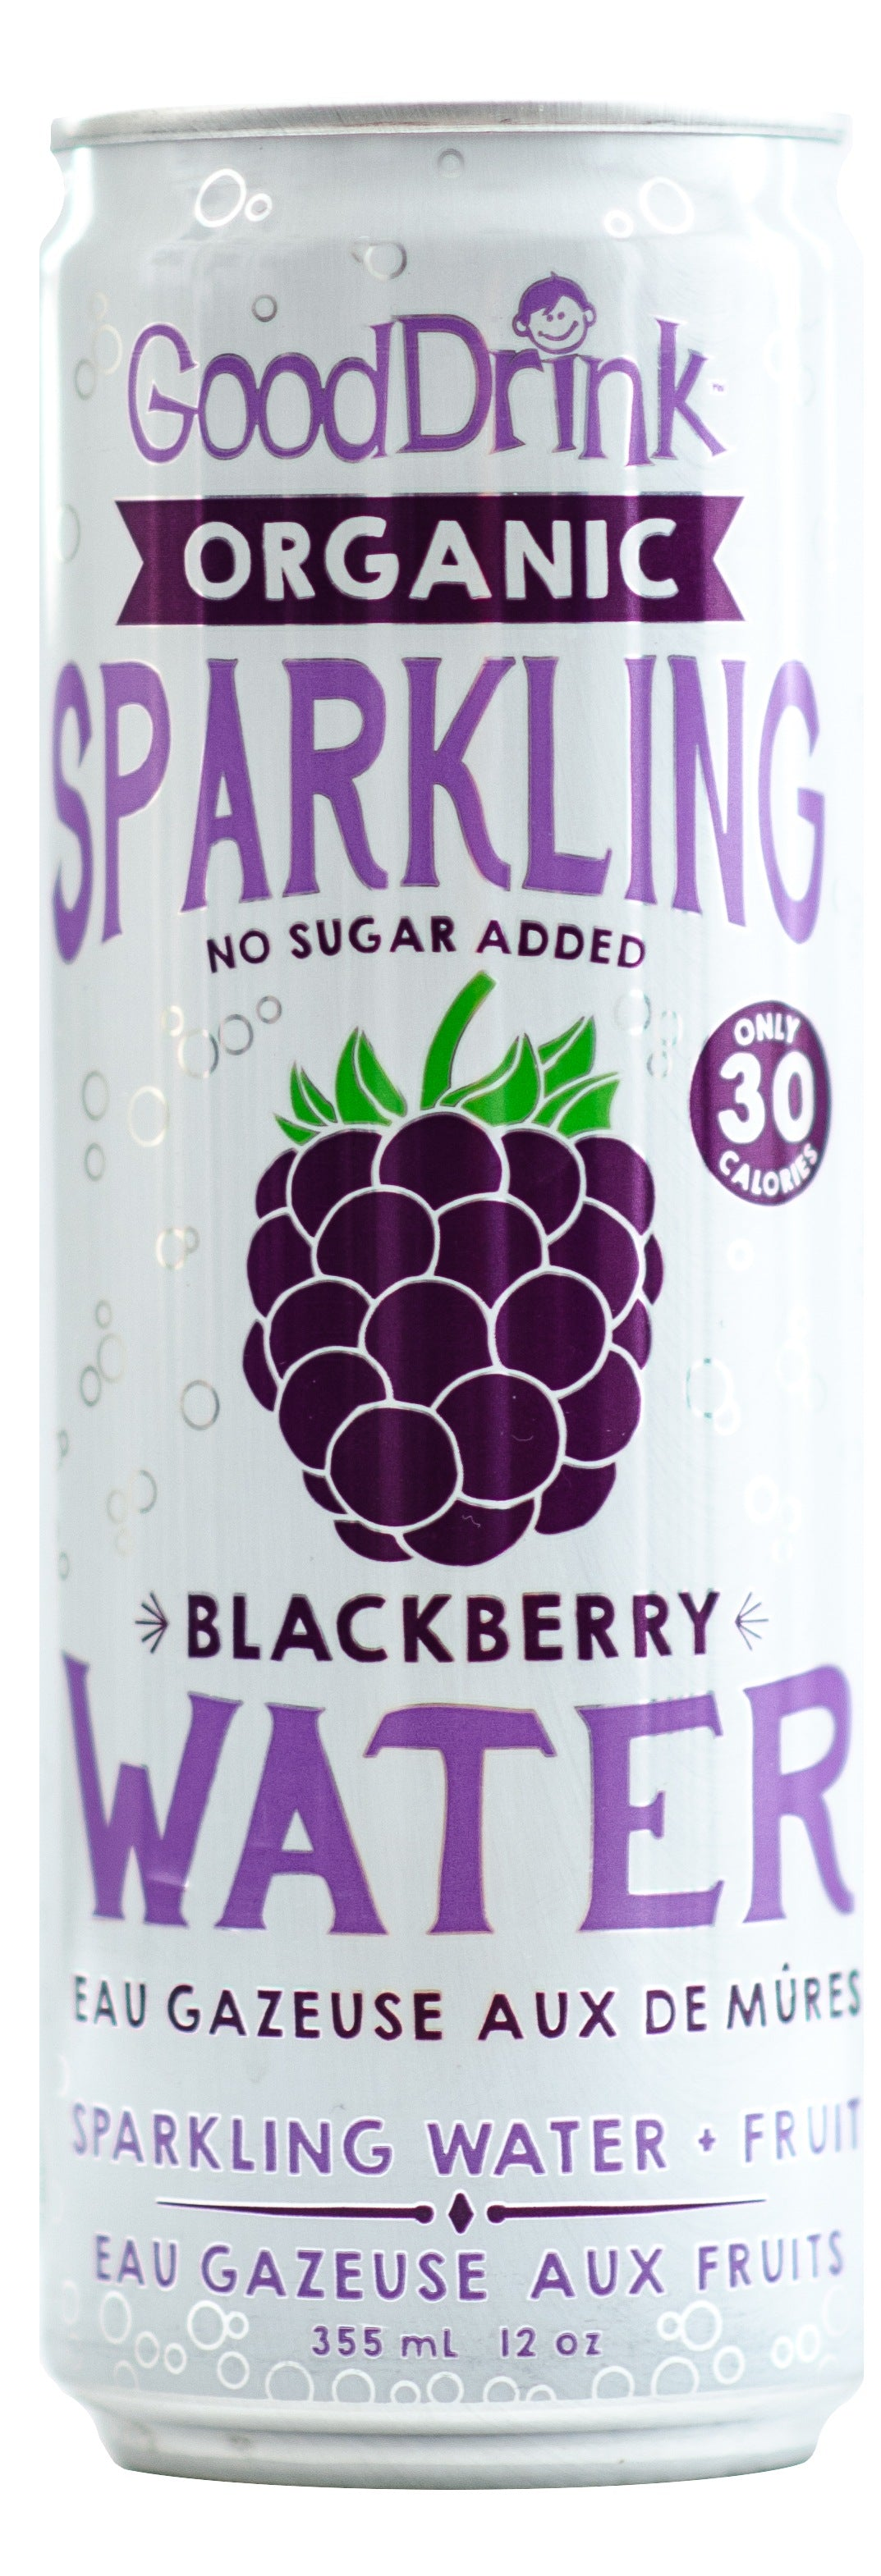 Food & Drink - Good Drink - Sparkling Water, Blackberry, 355ml